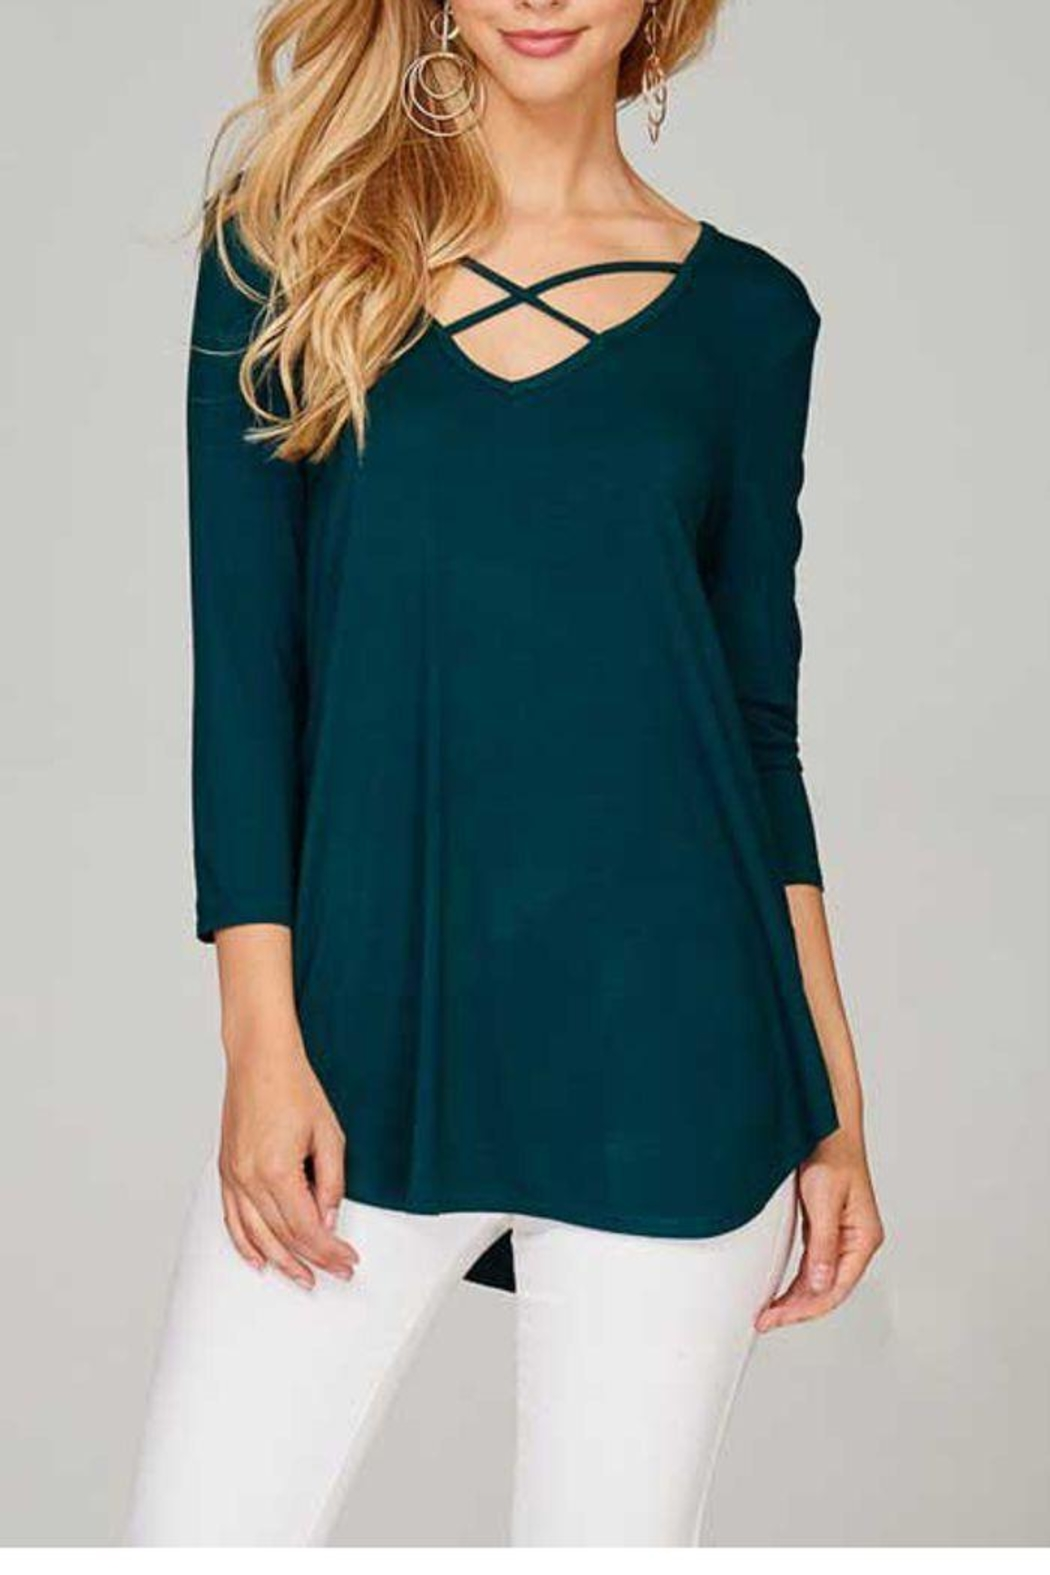 The Dressing Room Criss Cross Top - Front Cropped Image